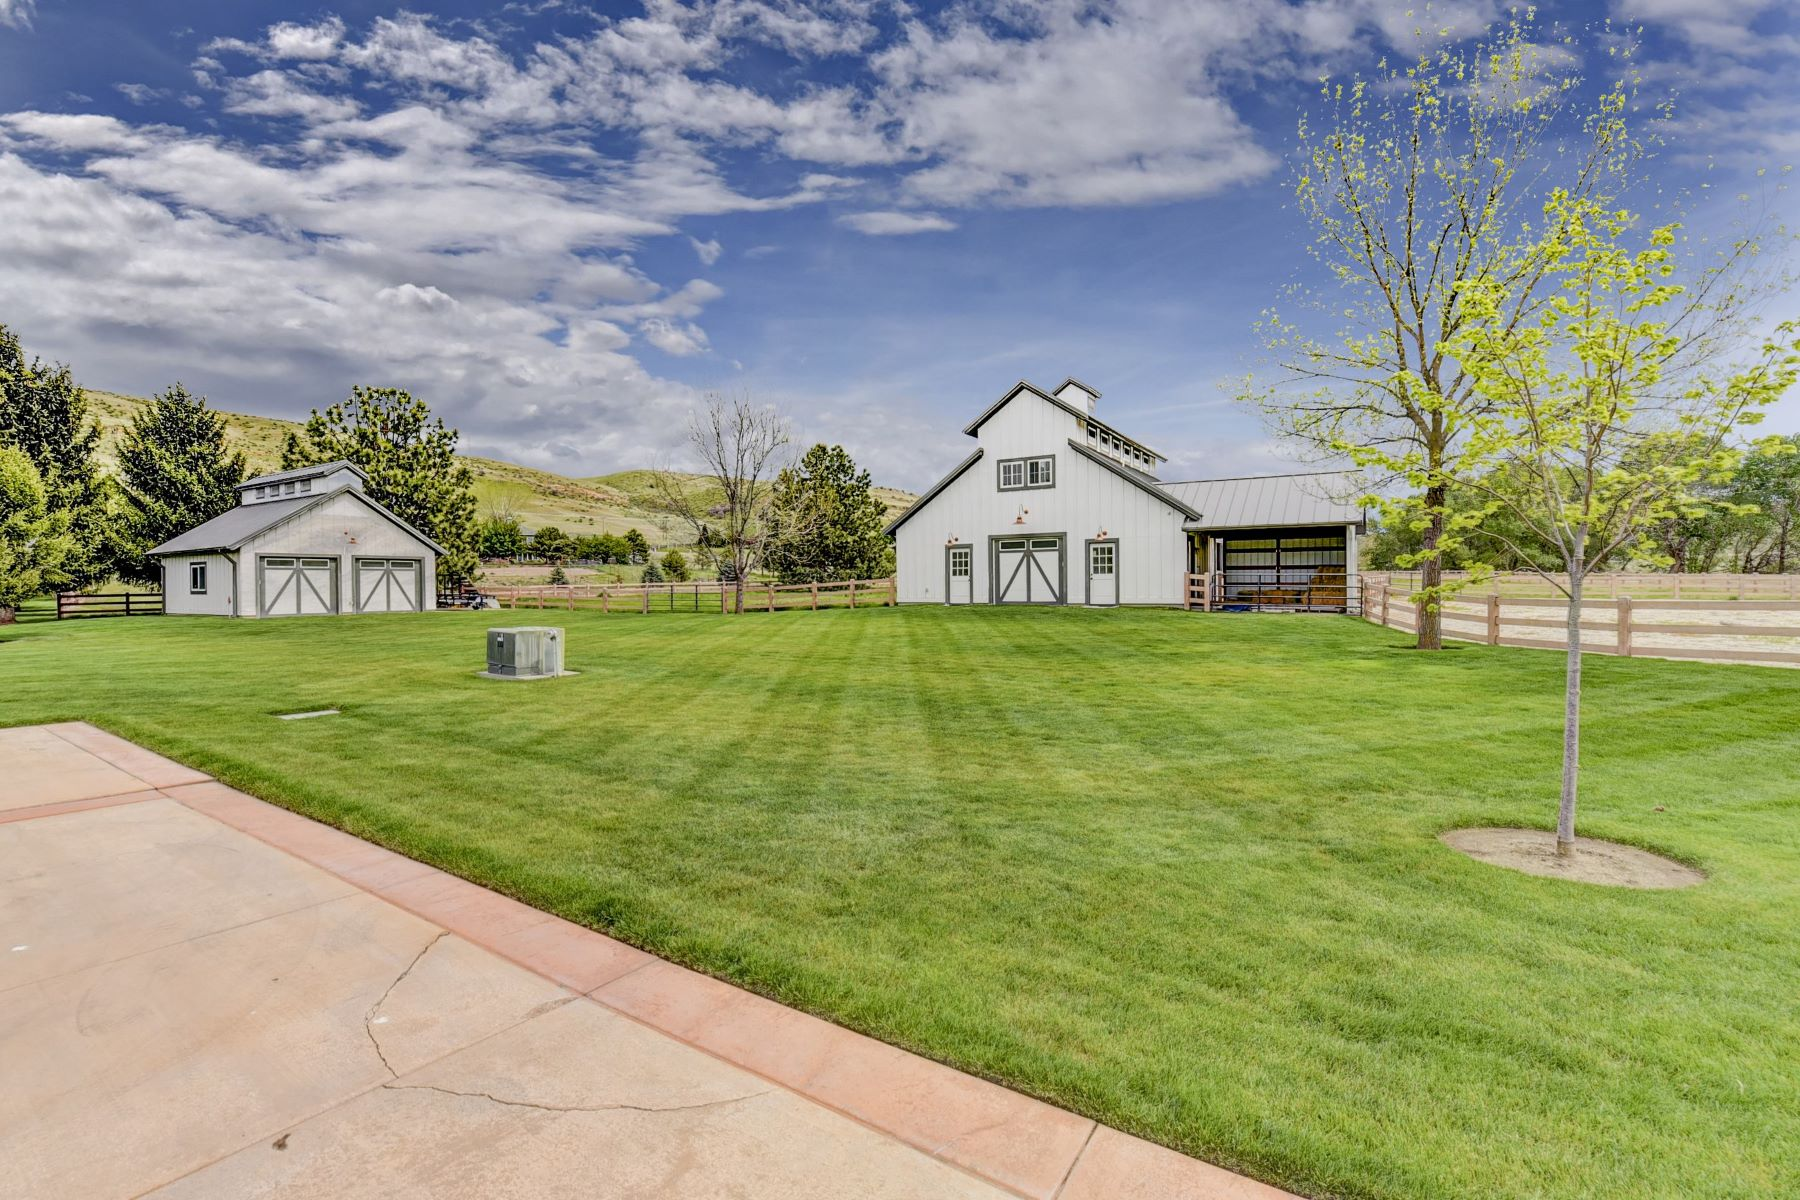 Additional photo for property listing at 3784 Rock Garden, Boise 3784 N Rock Garden Boise, Idaho 83714